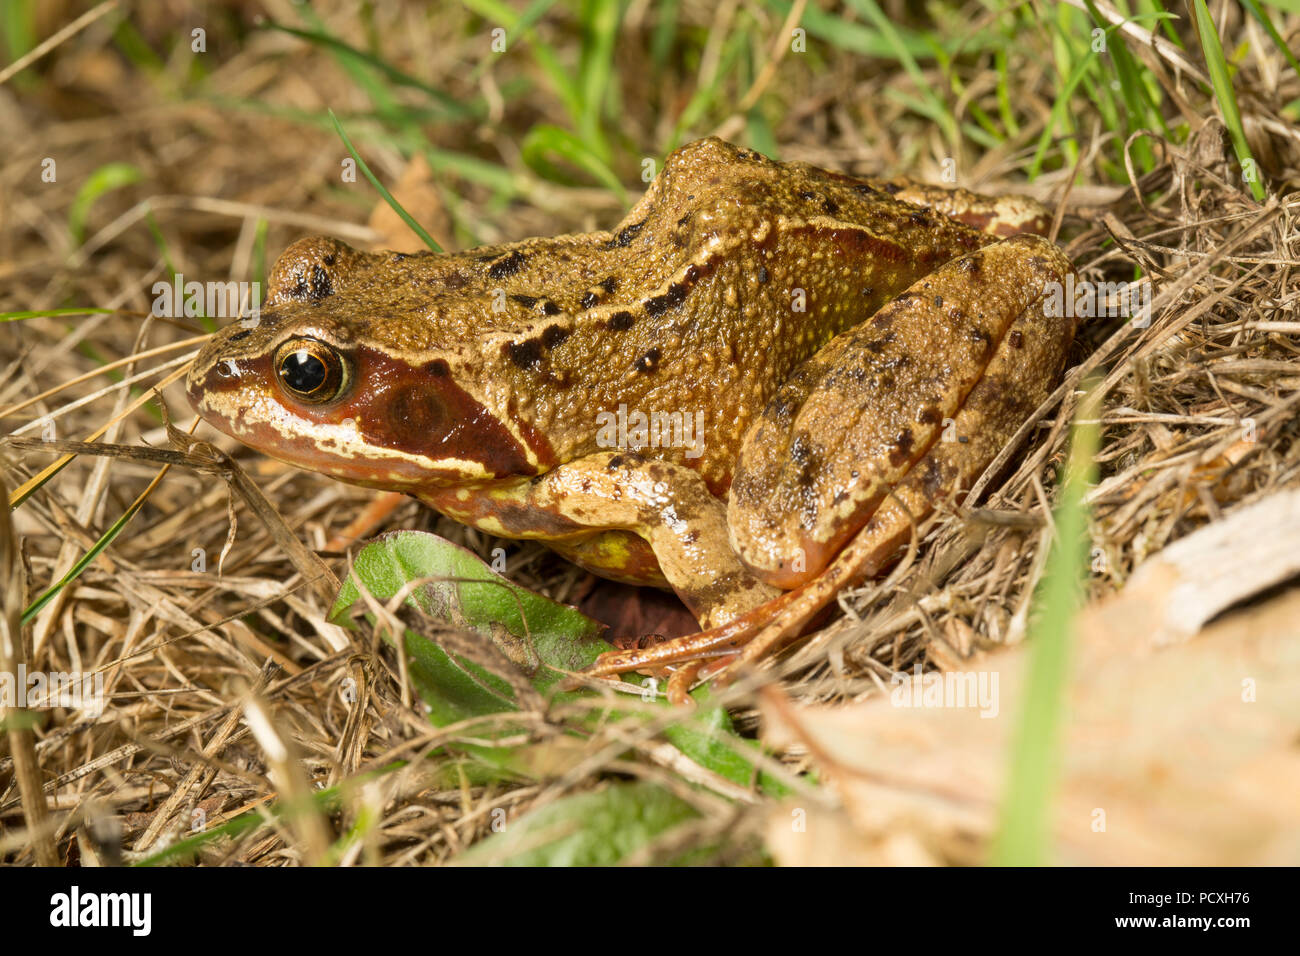 A common frog, Rana temporaria, photographed at night on a dry lawn in a garden during the UK 2018 hot weather. Lancashire North West England UK GB. - Stock Image